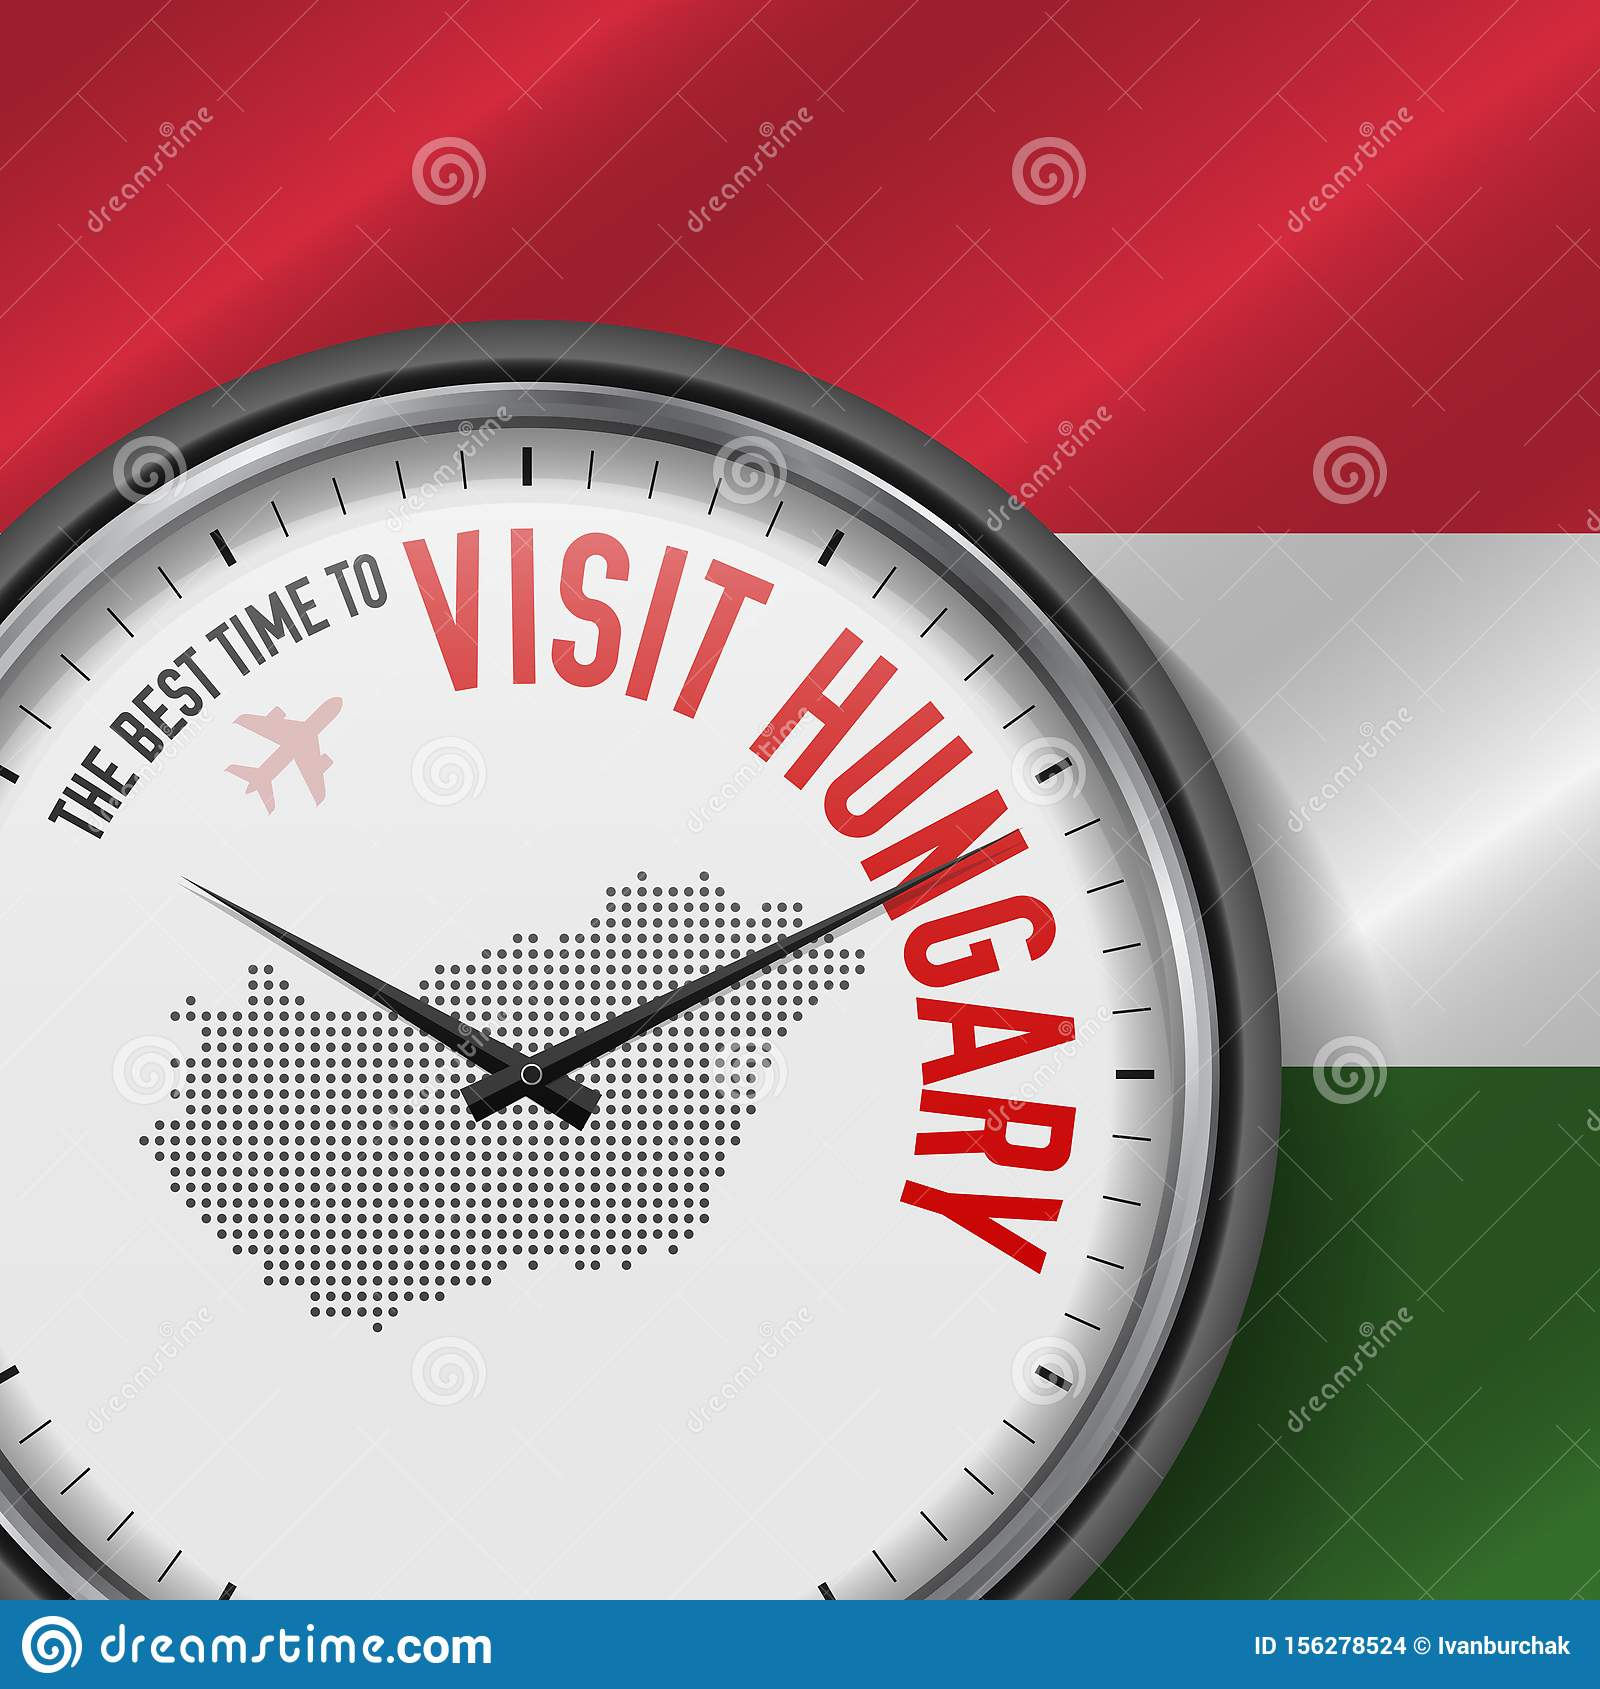 The Best Time to Visit Hungary. Flight, Tour to Hungary. Vector Illustration